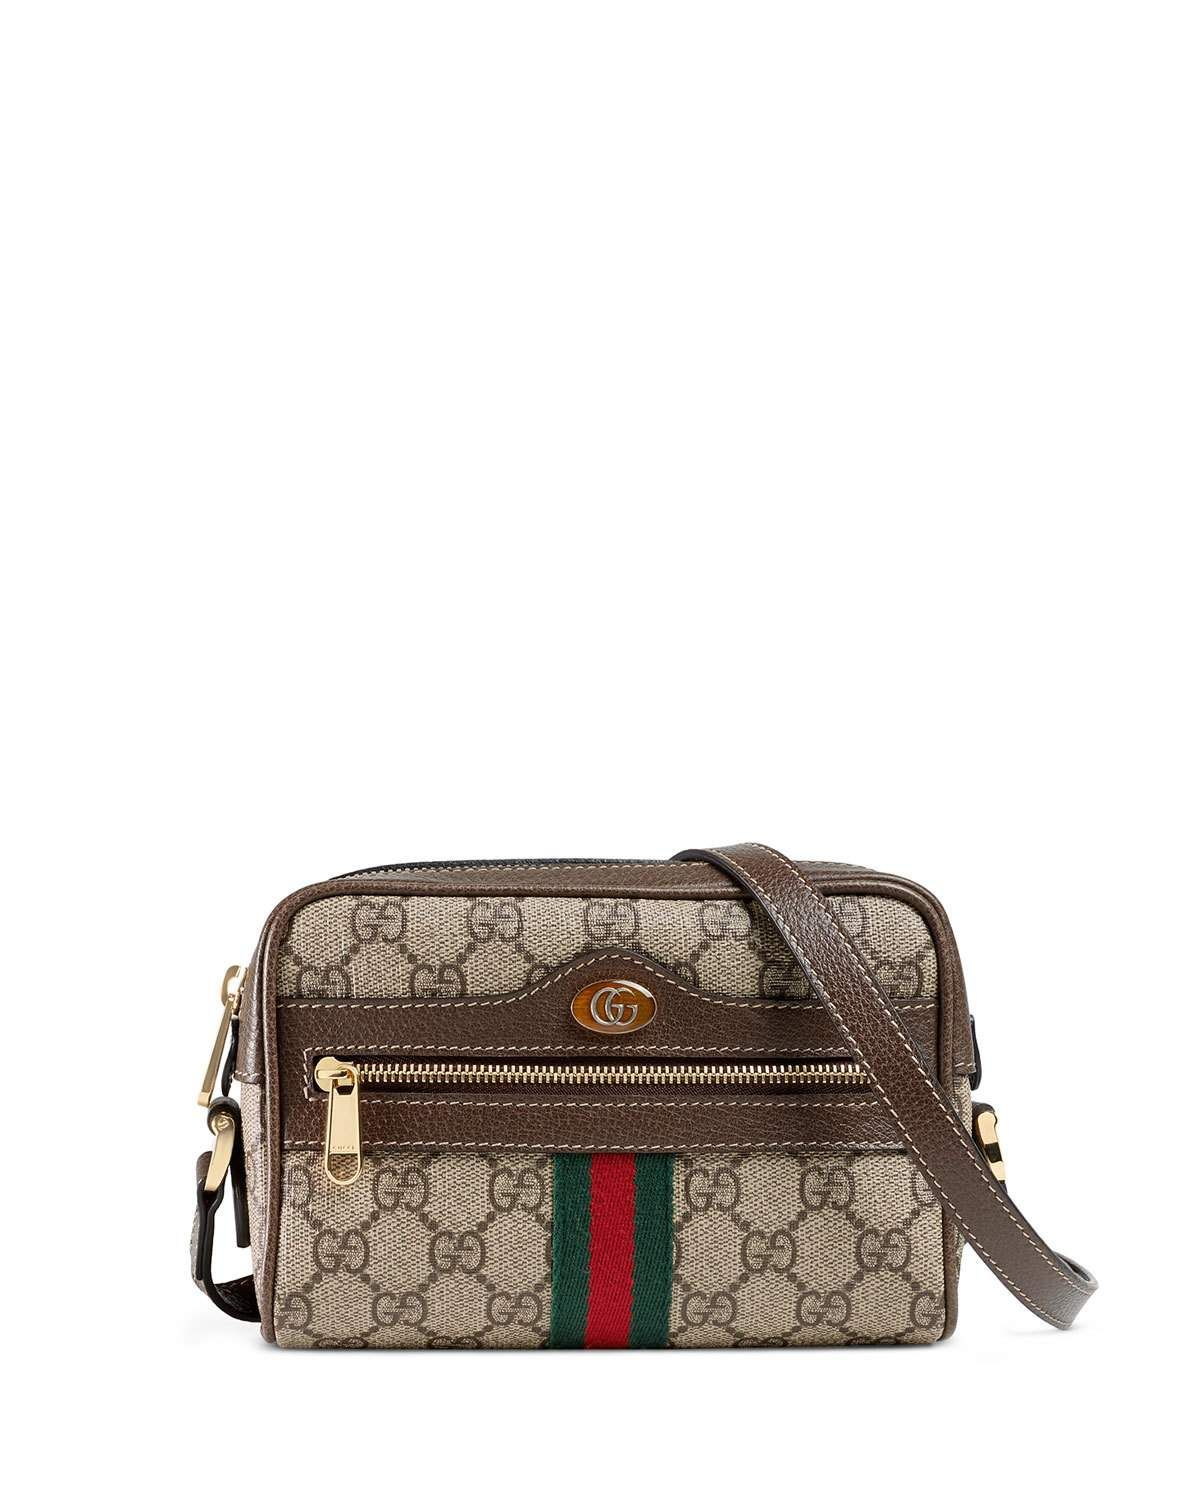 e4cfba23d Gucci Ophidia Small GG Supreme Crossbody Bag | Bags | Gucci ...